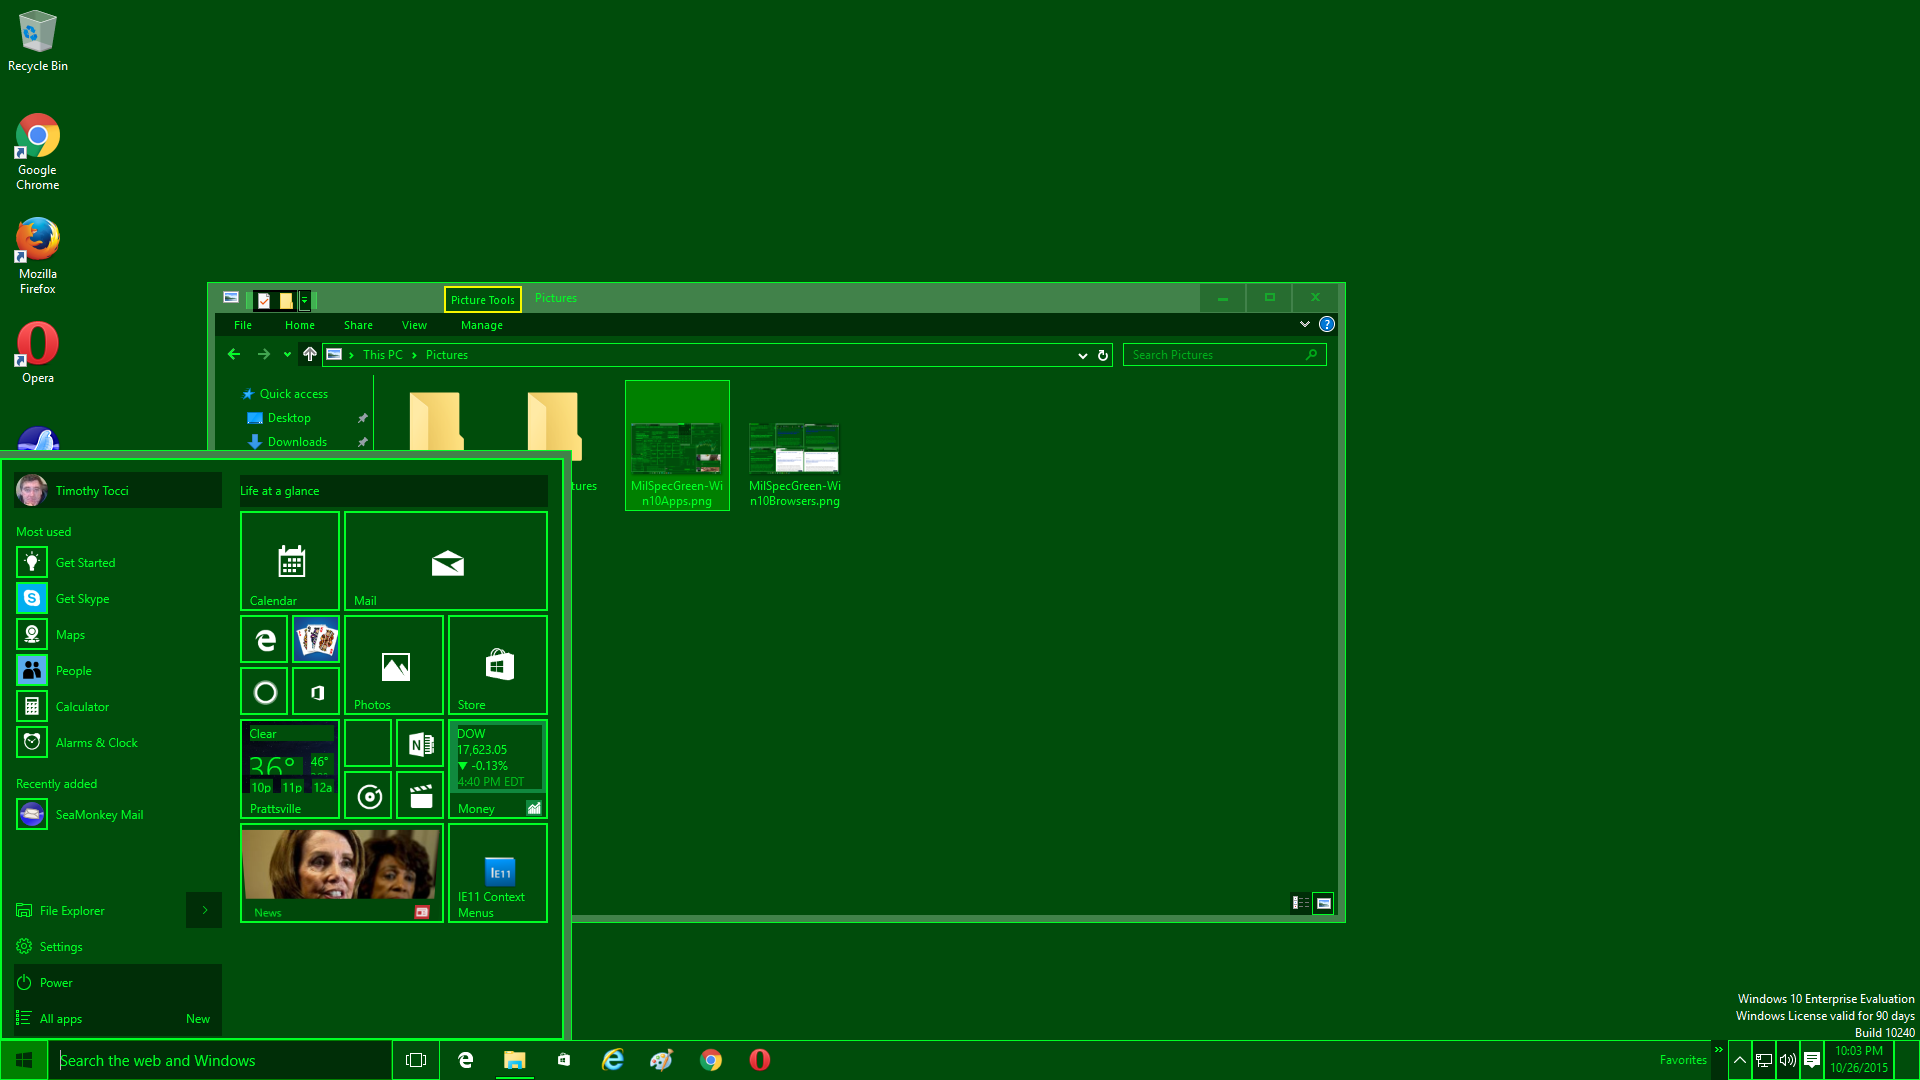 MilSpecGreen Windows 10 Start Menu